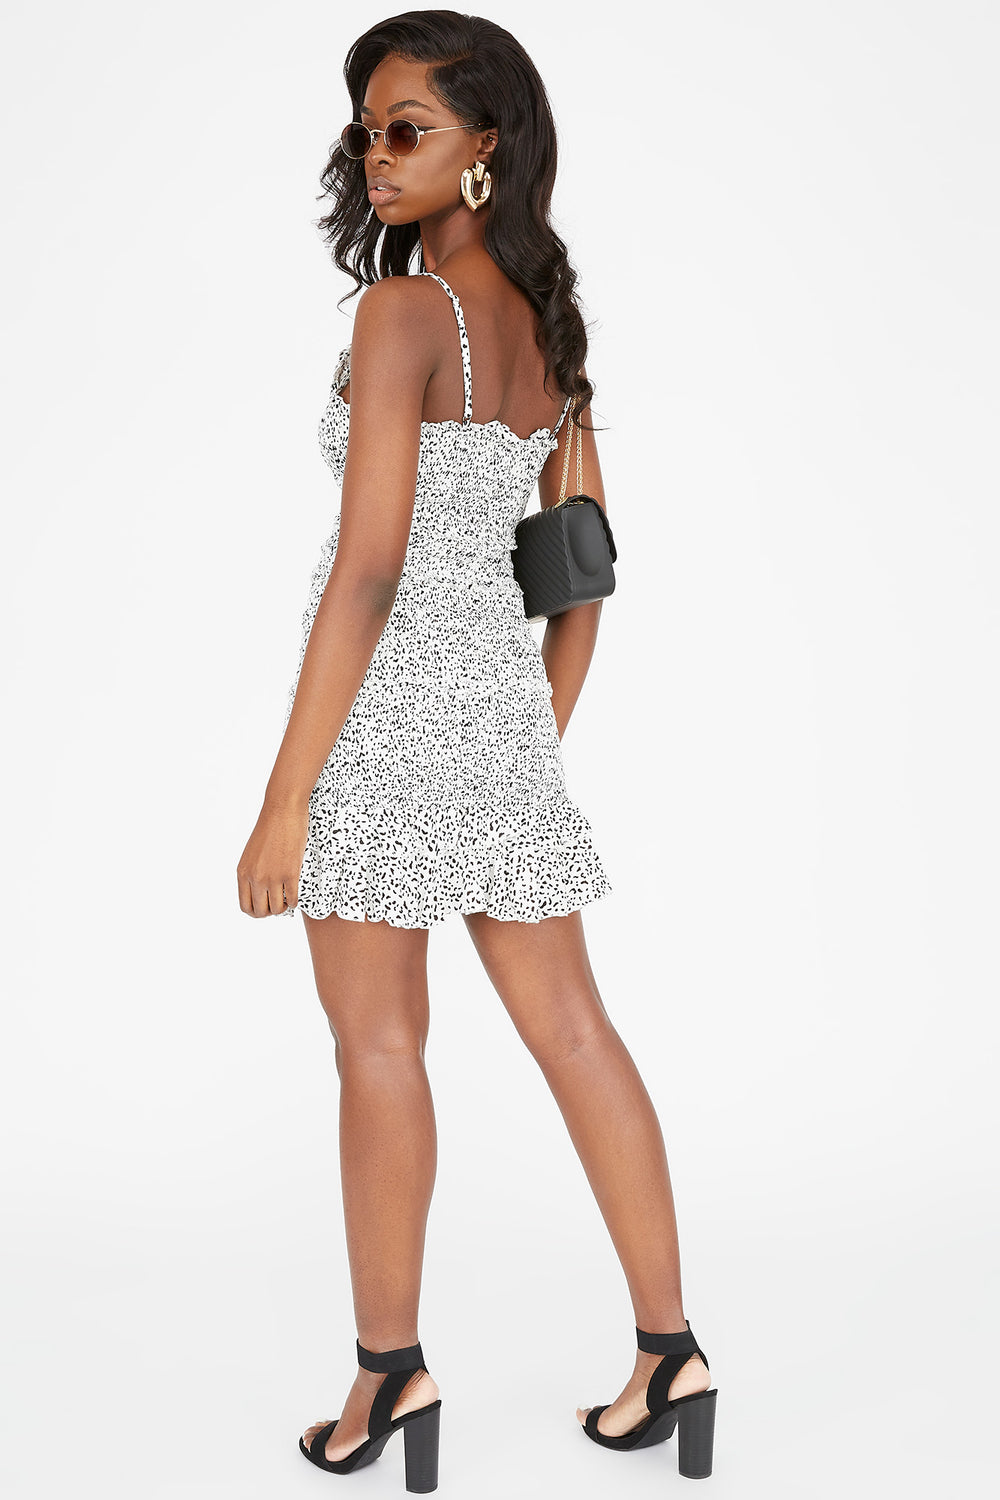 V-Neck Printed Smocked Ruffle Mini Dress White